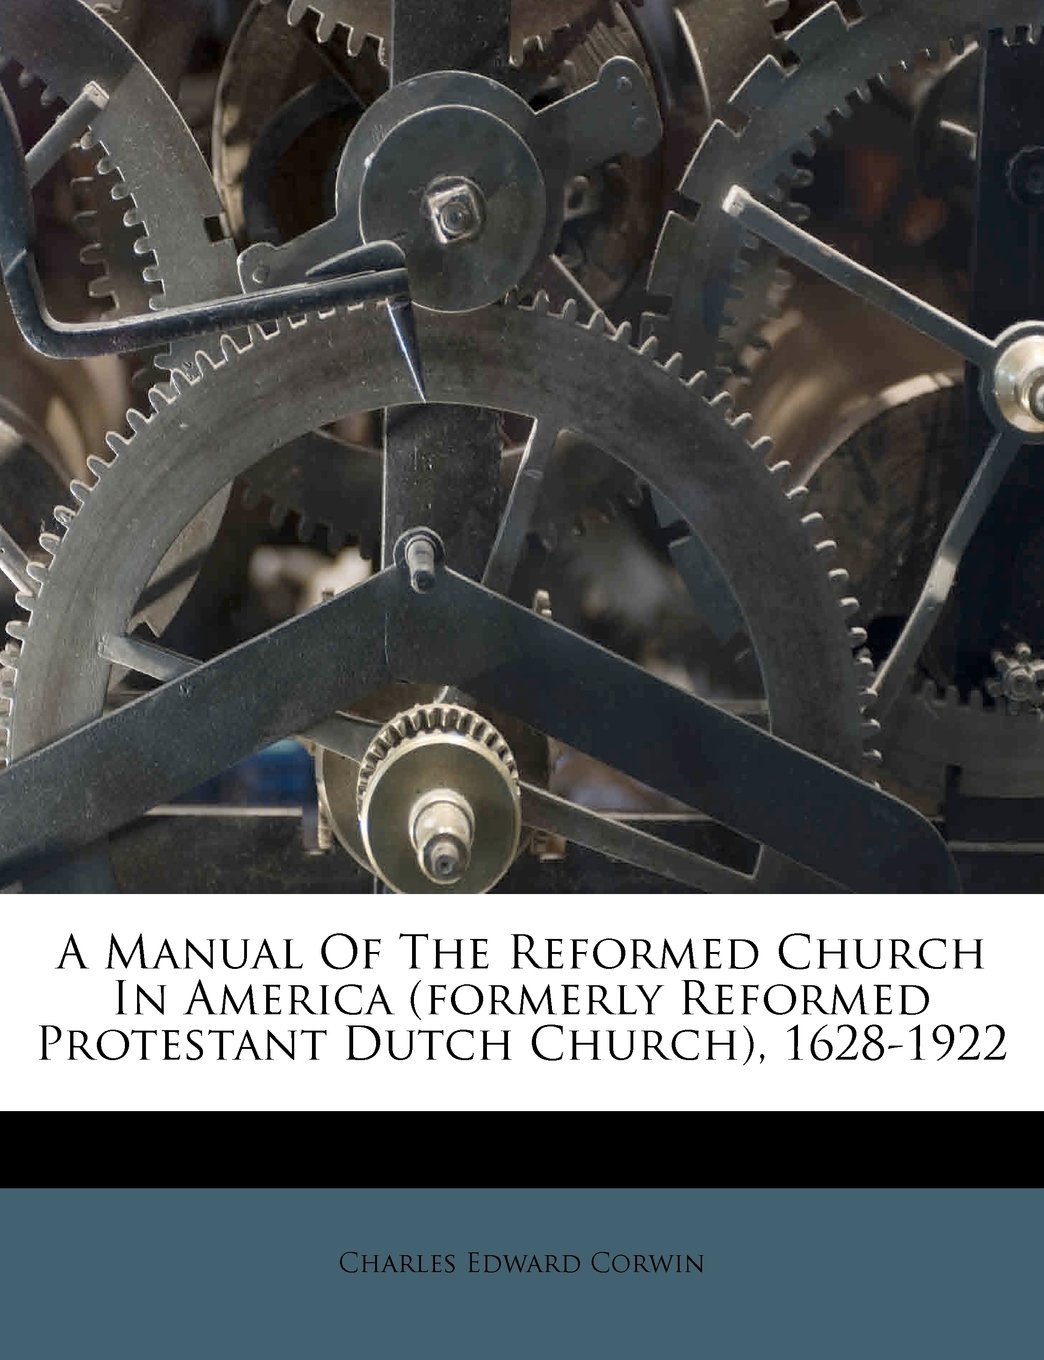 Read Online A Manual Of The Reformed Church In America (formerly Reformed Protestant Dutch Church), 1628-1922 PDF